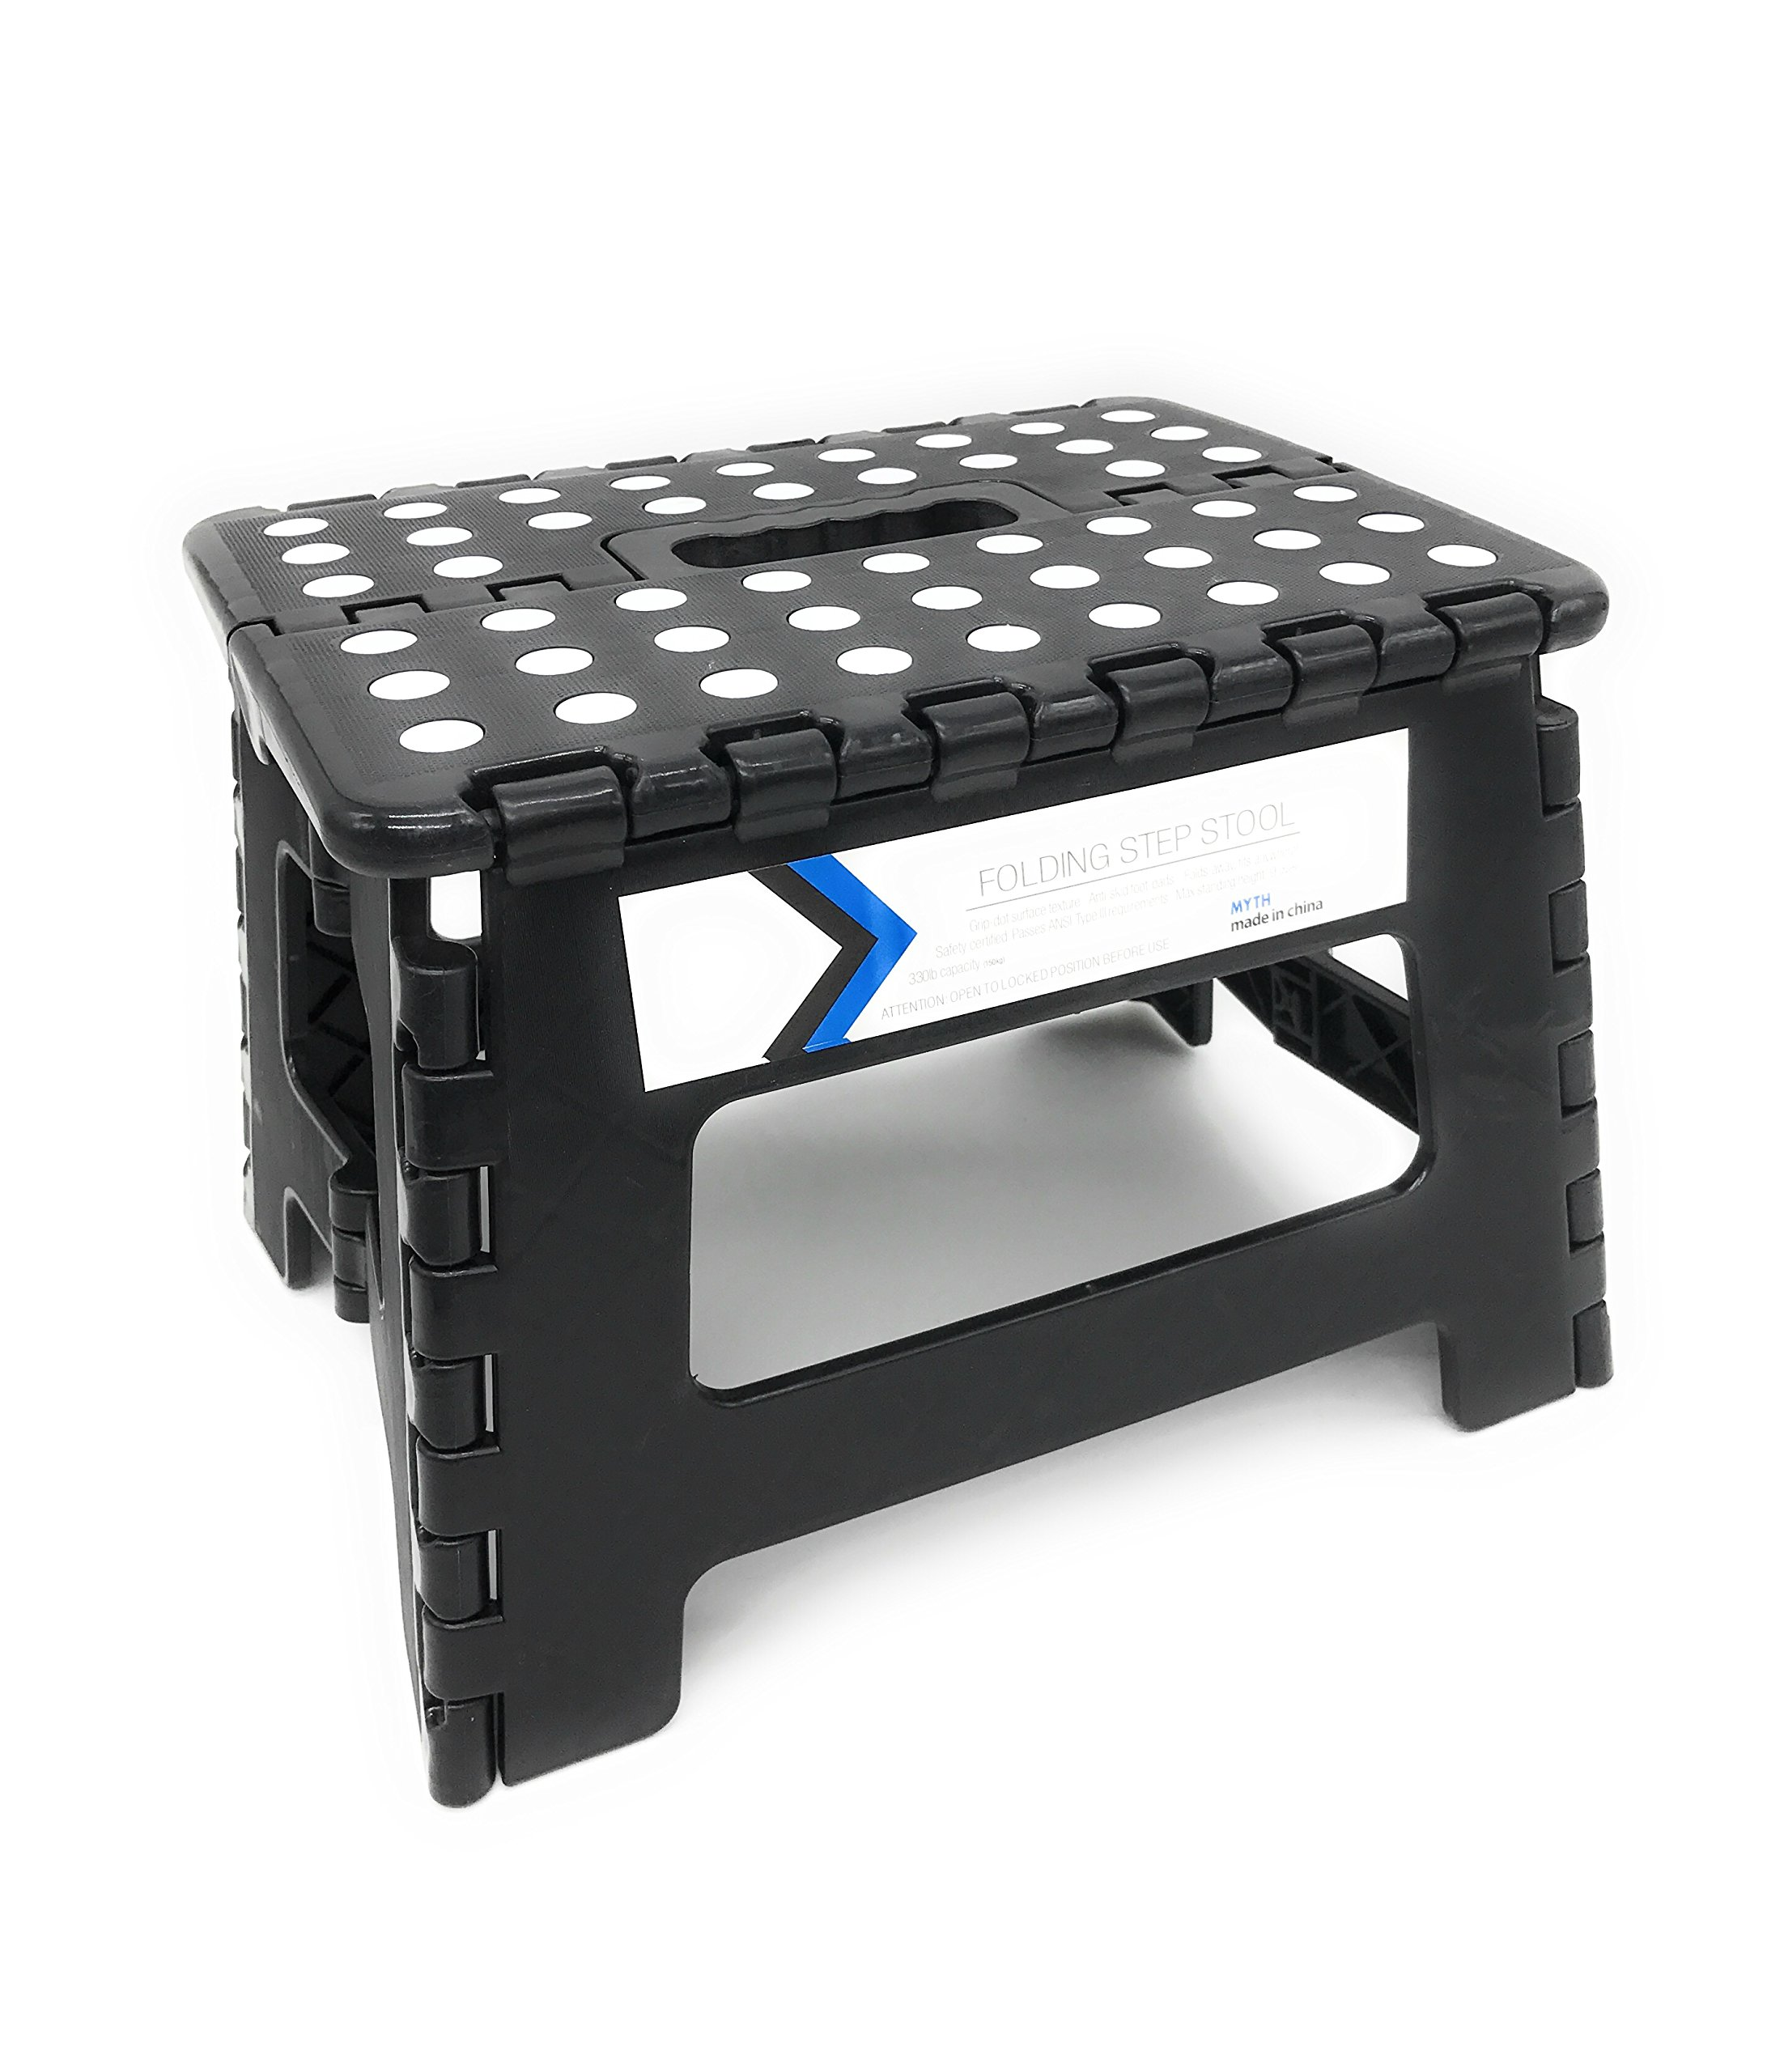 Amazon Com Folding Step Stool 13 Inches Height By Myth